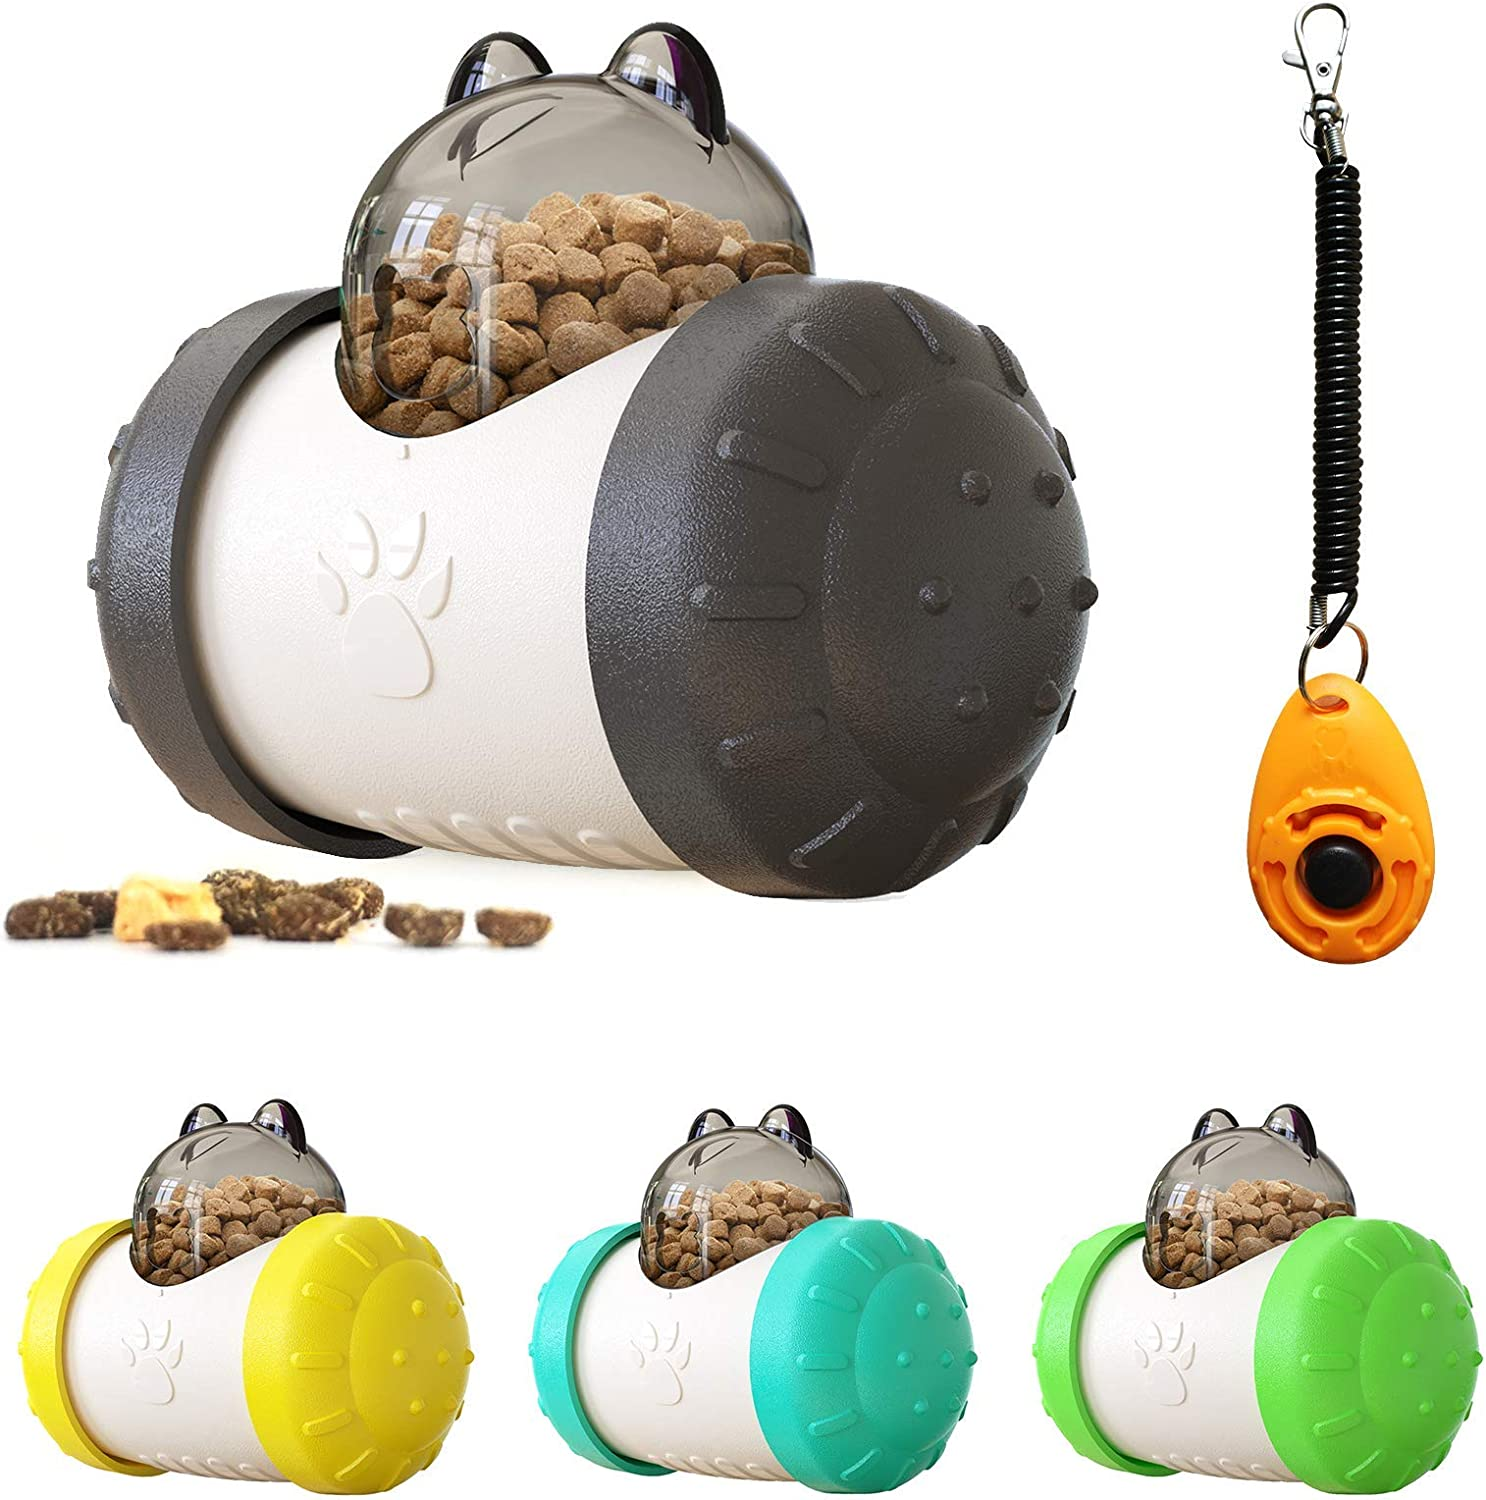 Treat Dispensing Dog Toys,Cat Enrichment Feeder Toys,Distraction Toys for Dogs with Friendly ABS Material,Swing Bear Treat Dispensing Ball Black +White